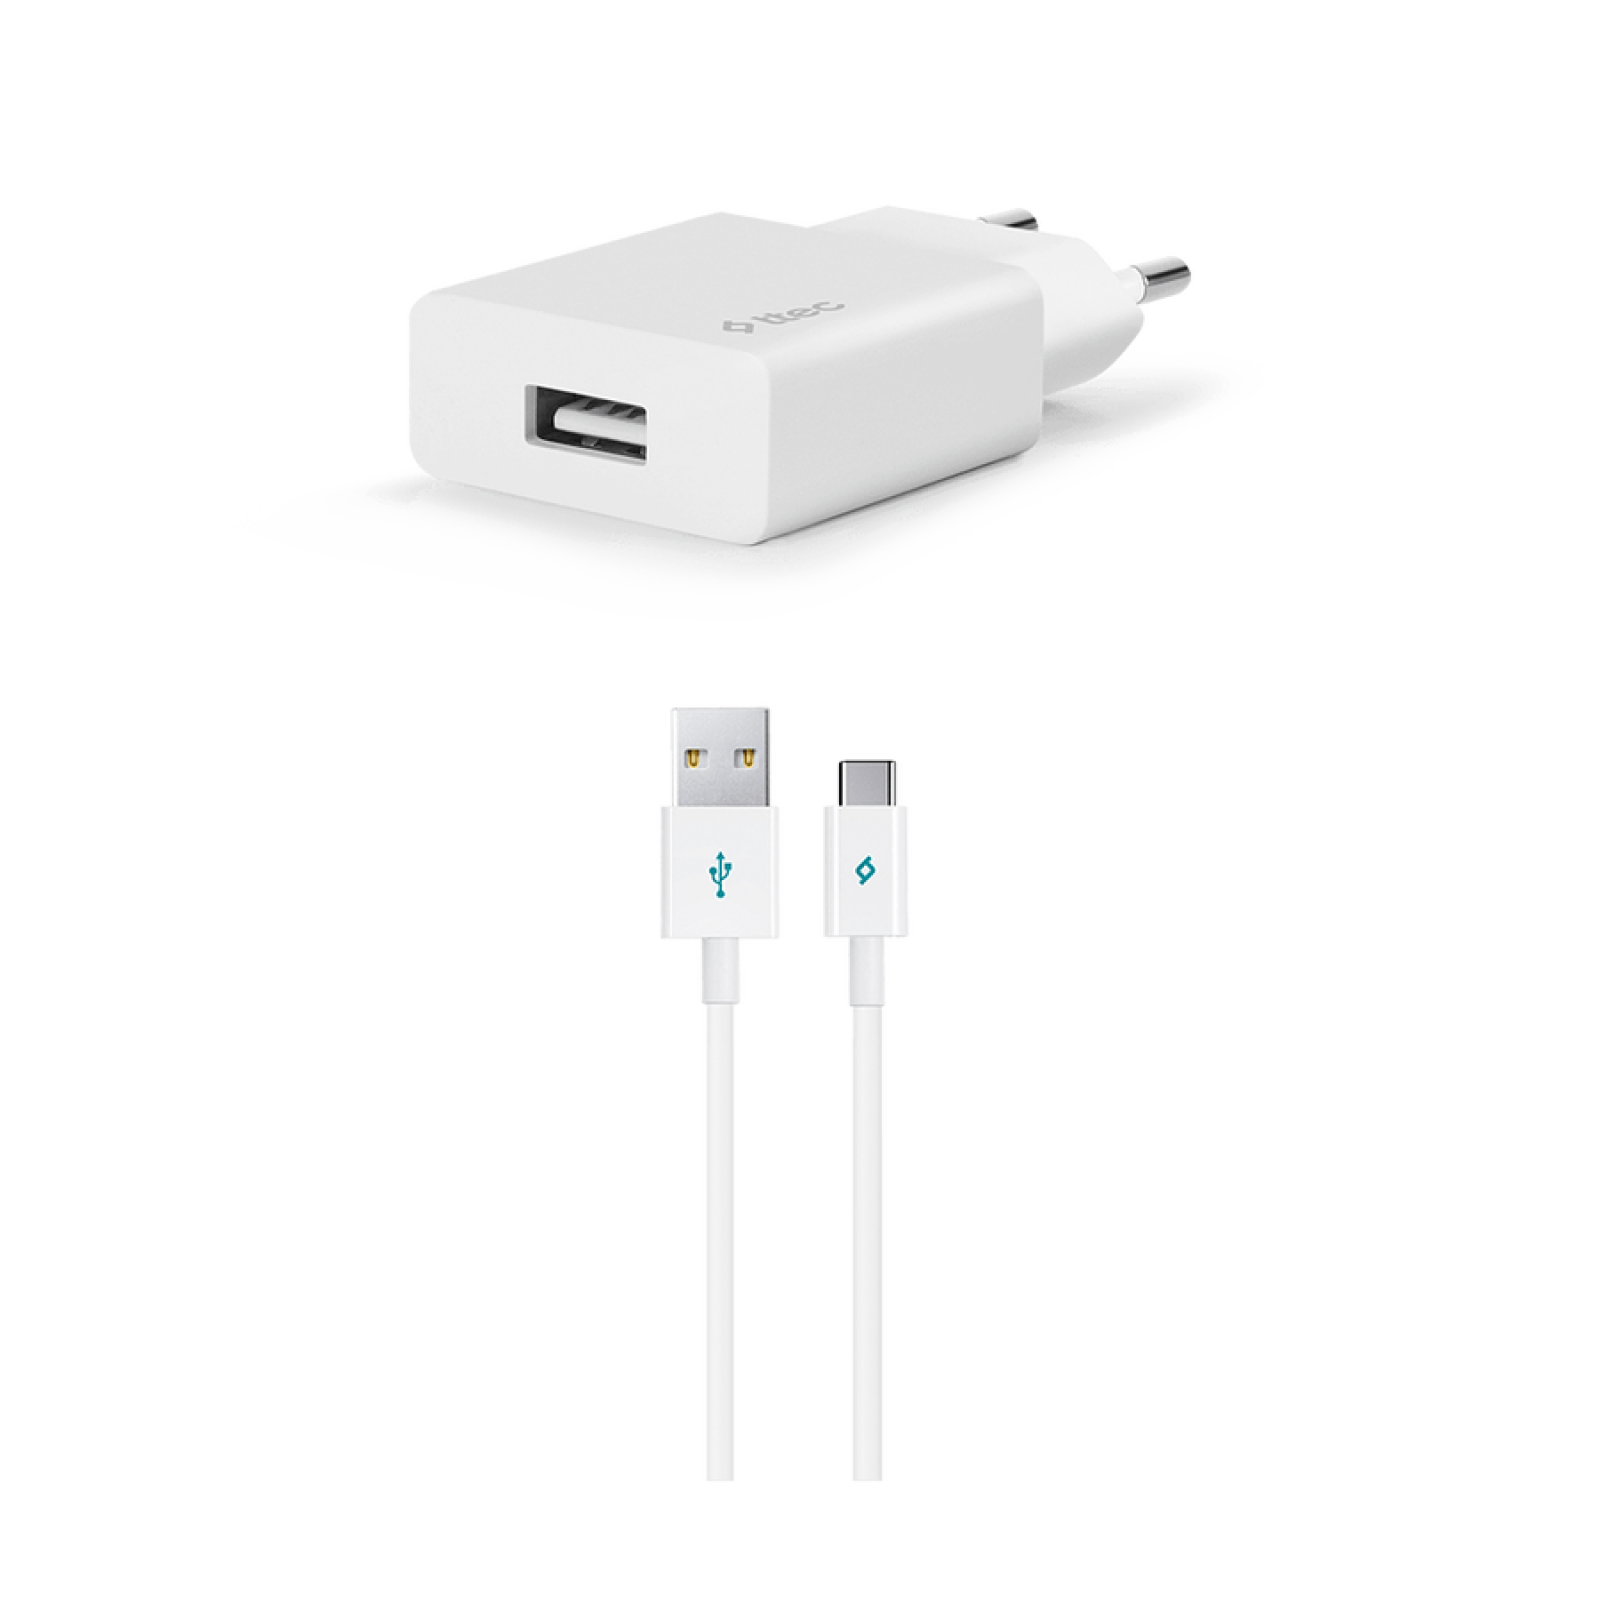 Зарядно 220V SmartCharger USB Travel Charger, 2.1A, incl. Type C  Cable - Бяло,116904